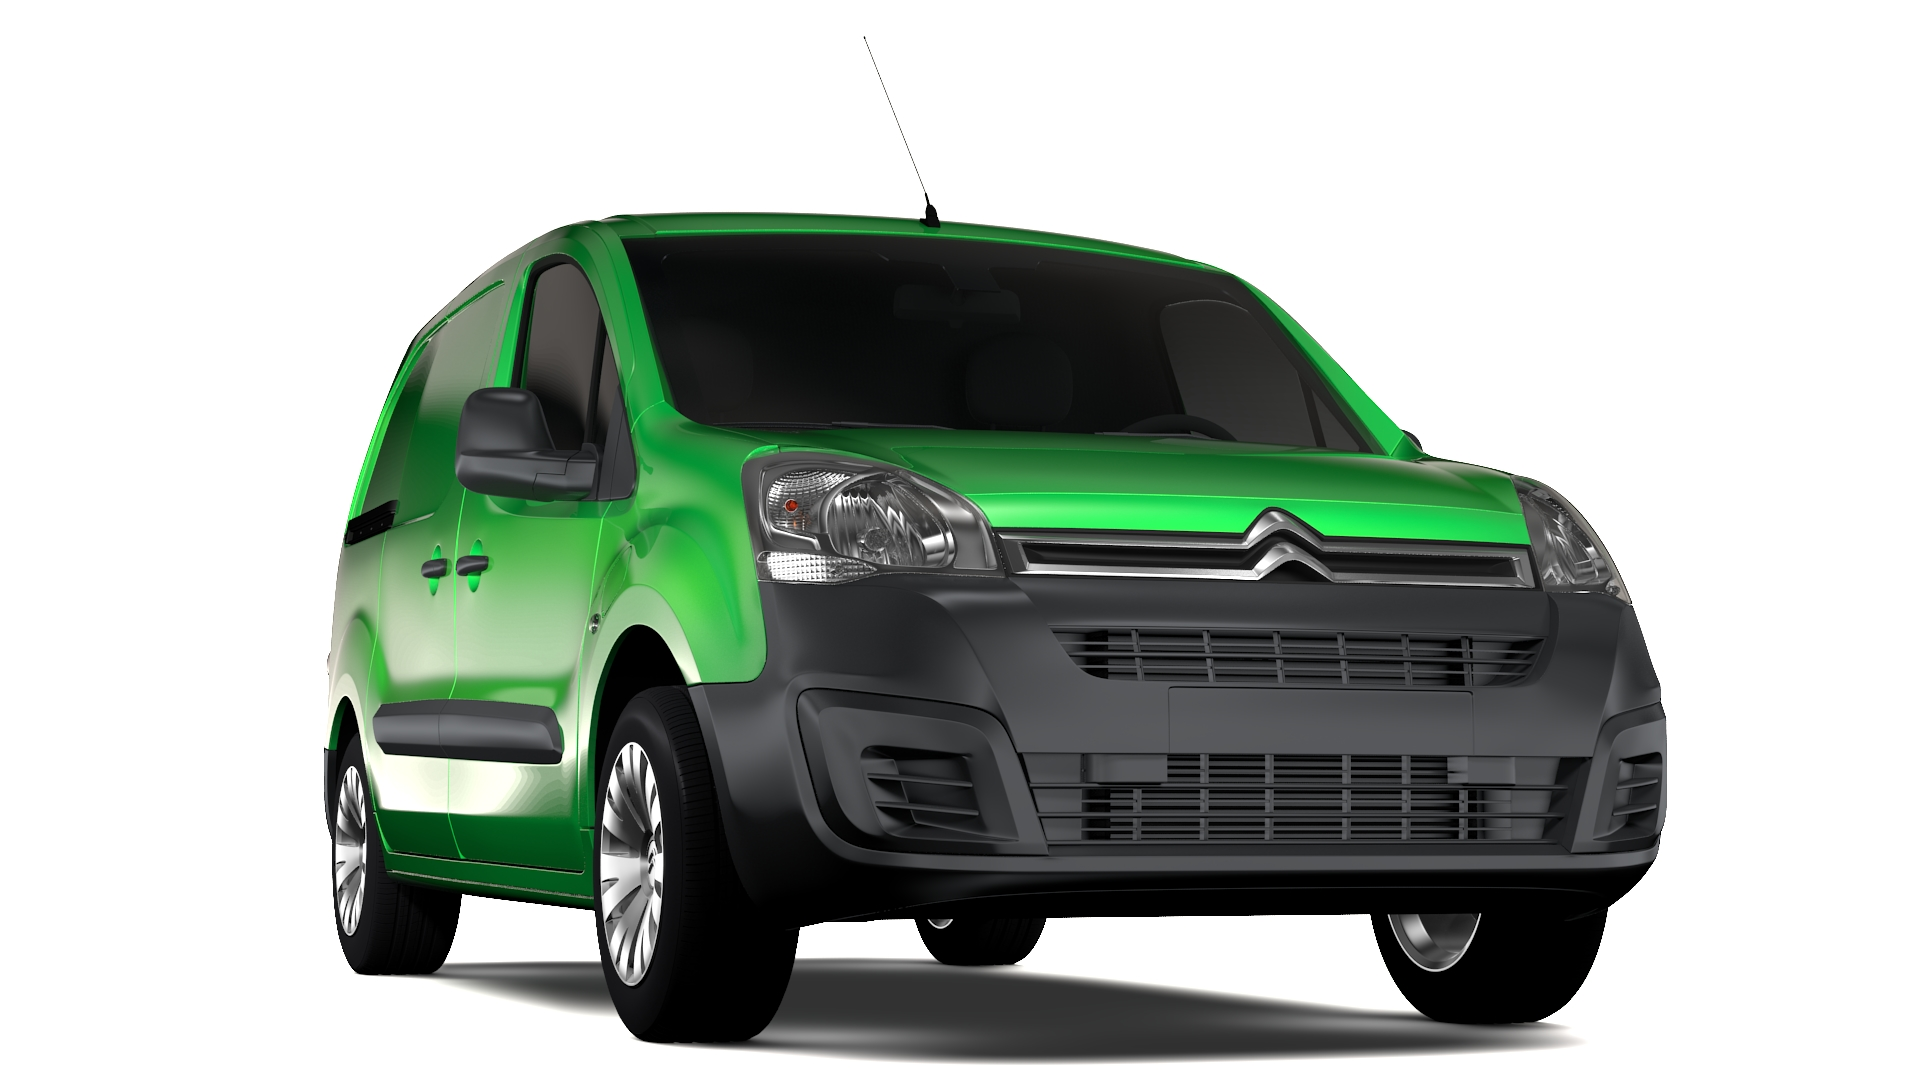 citroen berlingo van l1 full electric 2017 3d model 3ds max fbx c4d lwo ma mb hrc xsi obj 253154